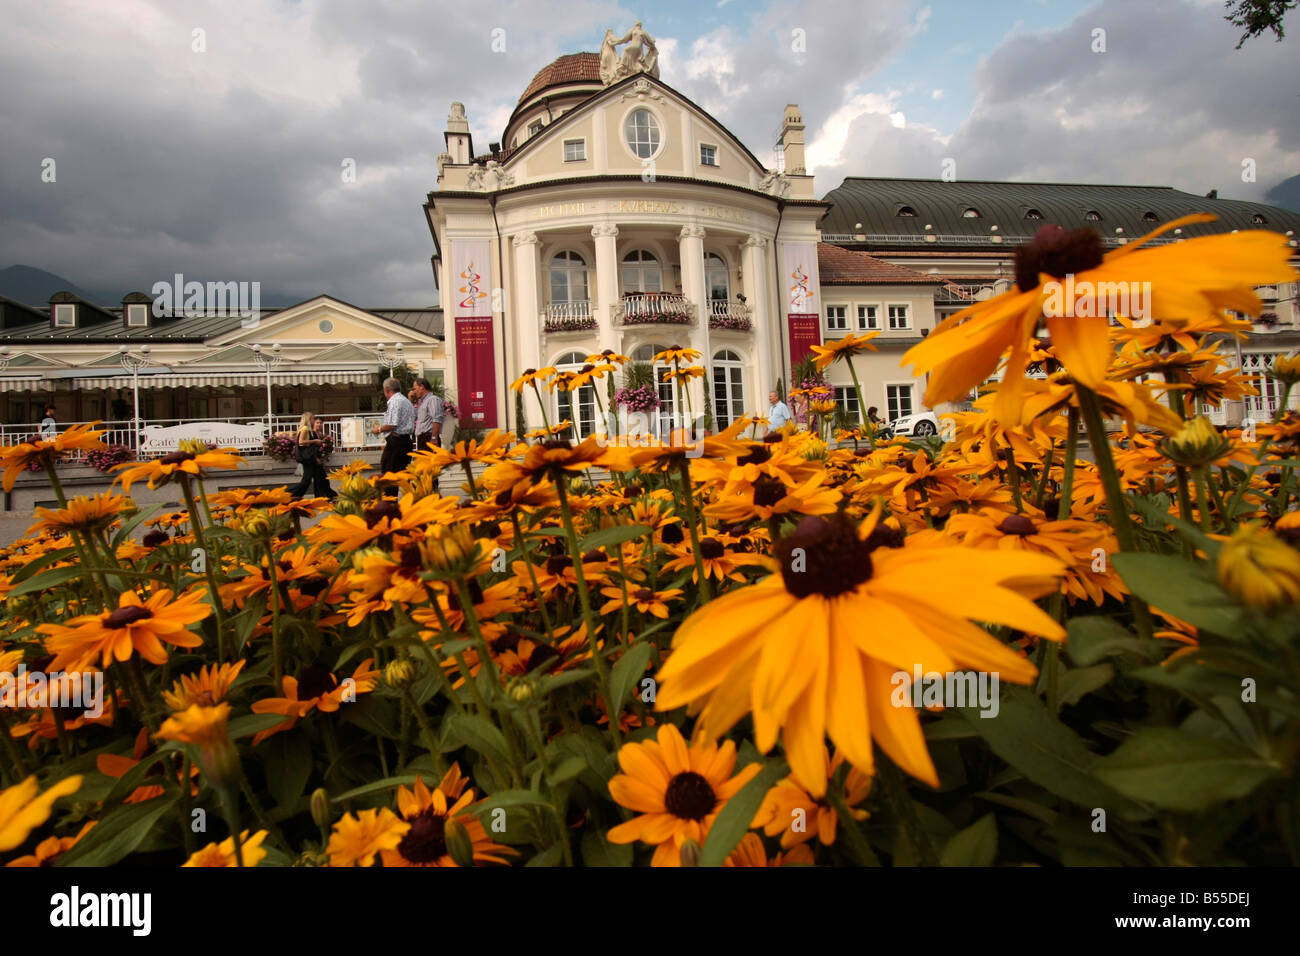 flowers in front of the Kurhaus in Merano Italy - Stock Image